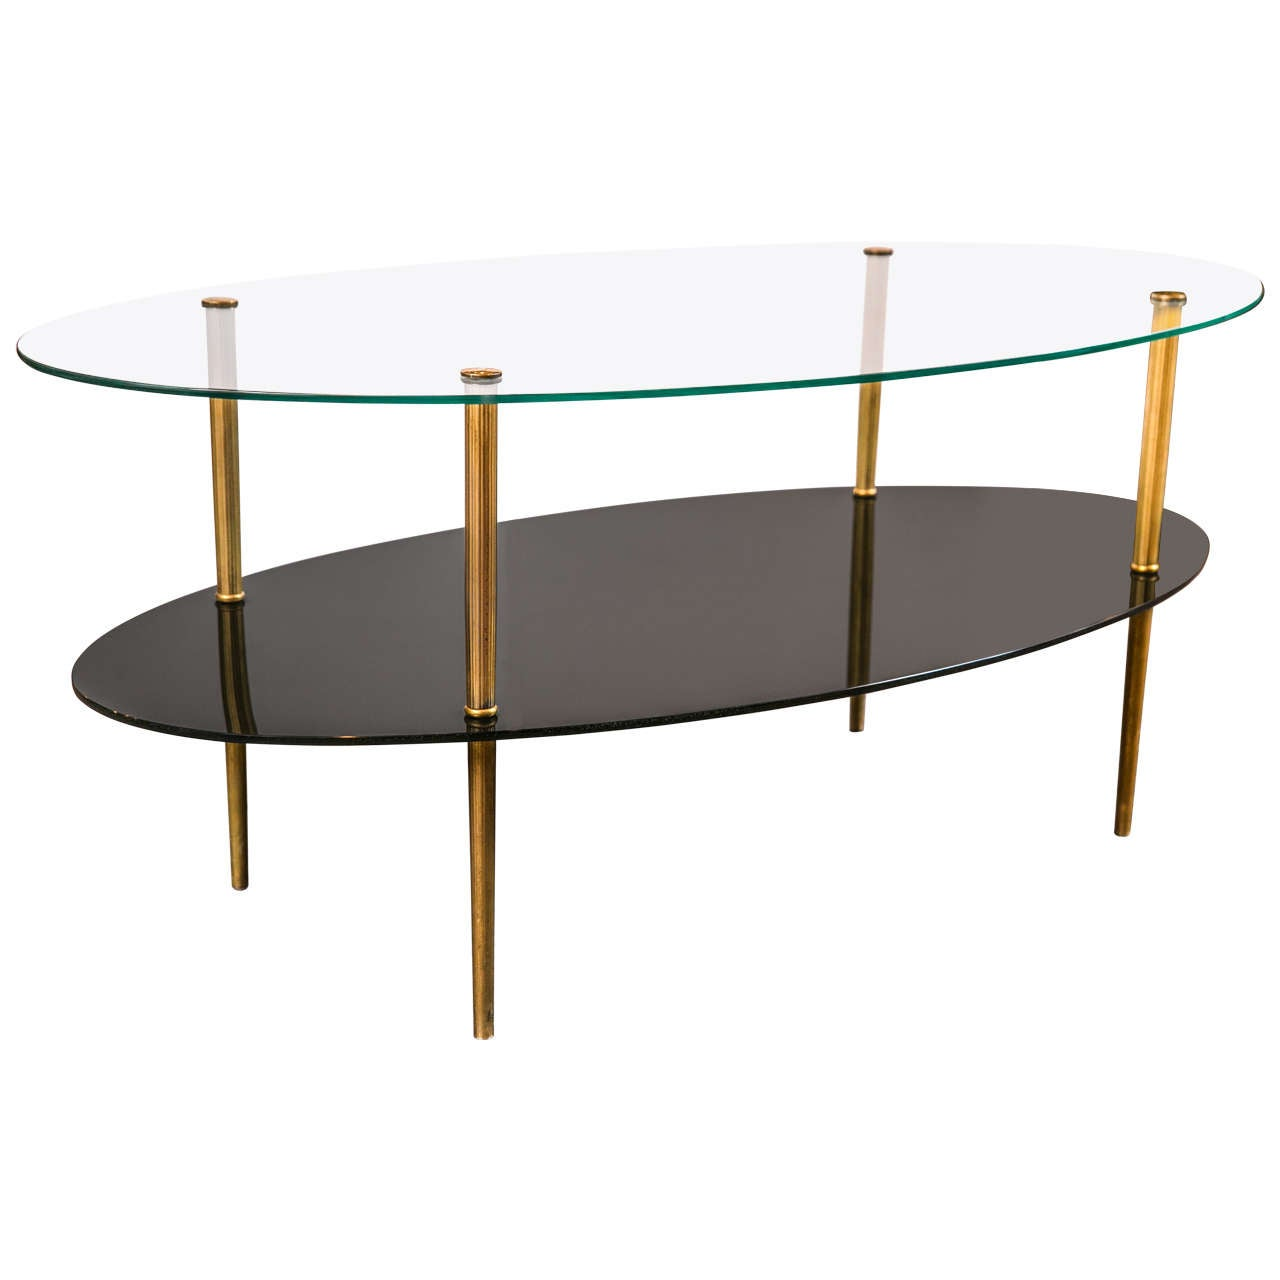 Oval Glass Two Tier Coffee Table For Sale At 1stdibs: glass oval coffee tables